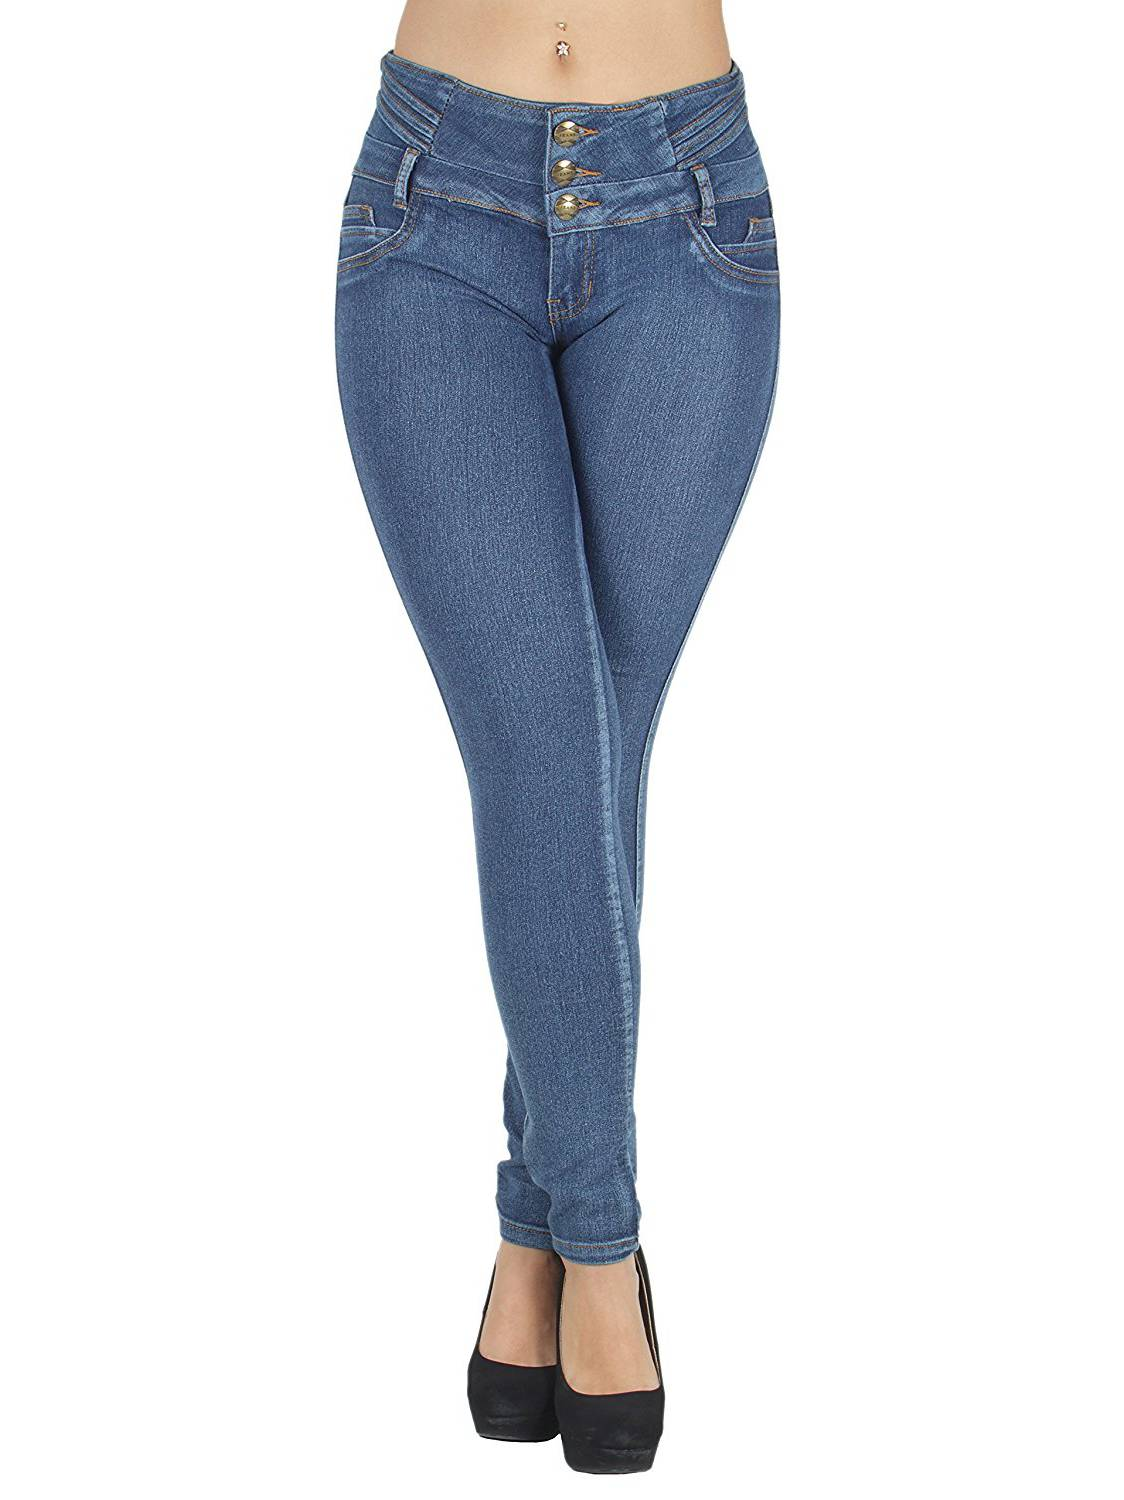 N616  Colombian Design, Butt Lift, Levanta Cola, Sexy Skinny Jeans